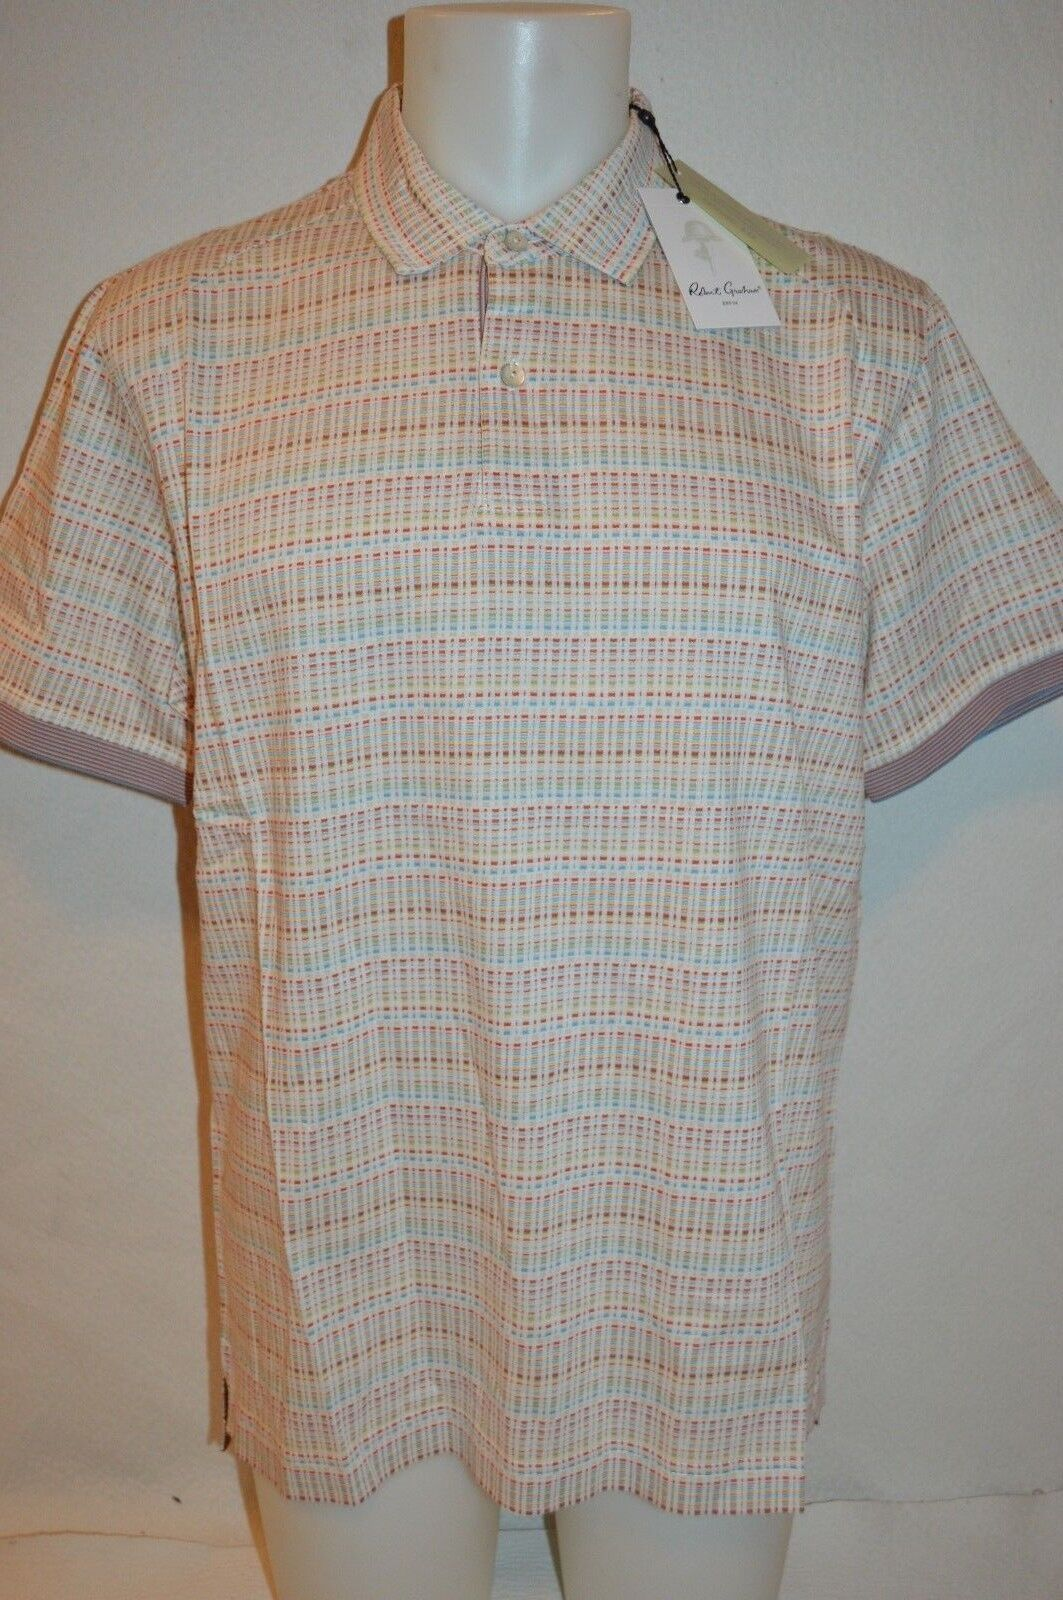 ROBERT GRAHAM Man's ANGOLA Classic Fit Polo NEW Size Large  Retail